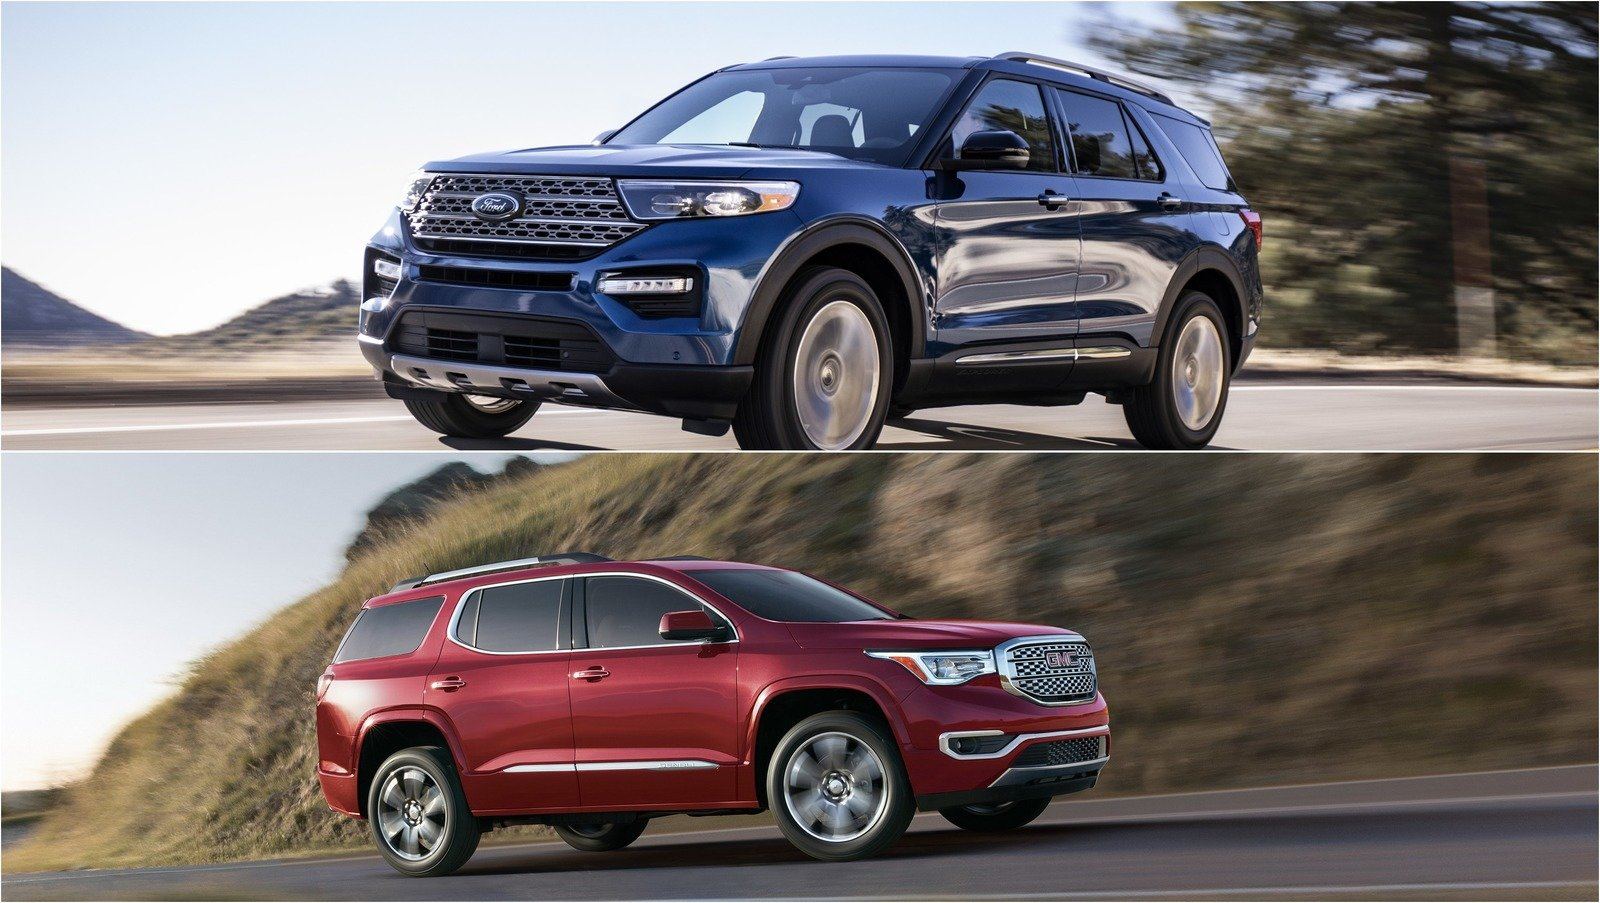 2020 Ford Explorer Vs 2019 GMC Acadia: How They Compare ...